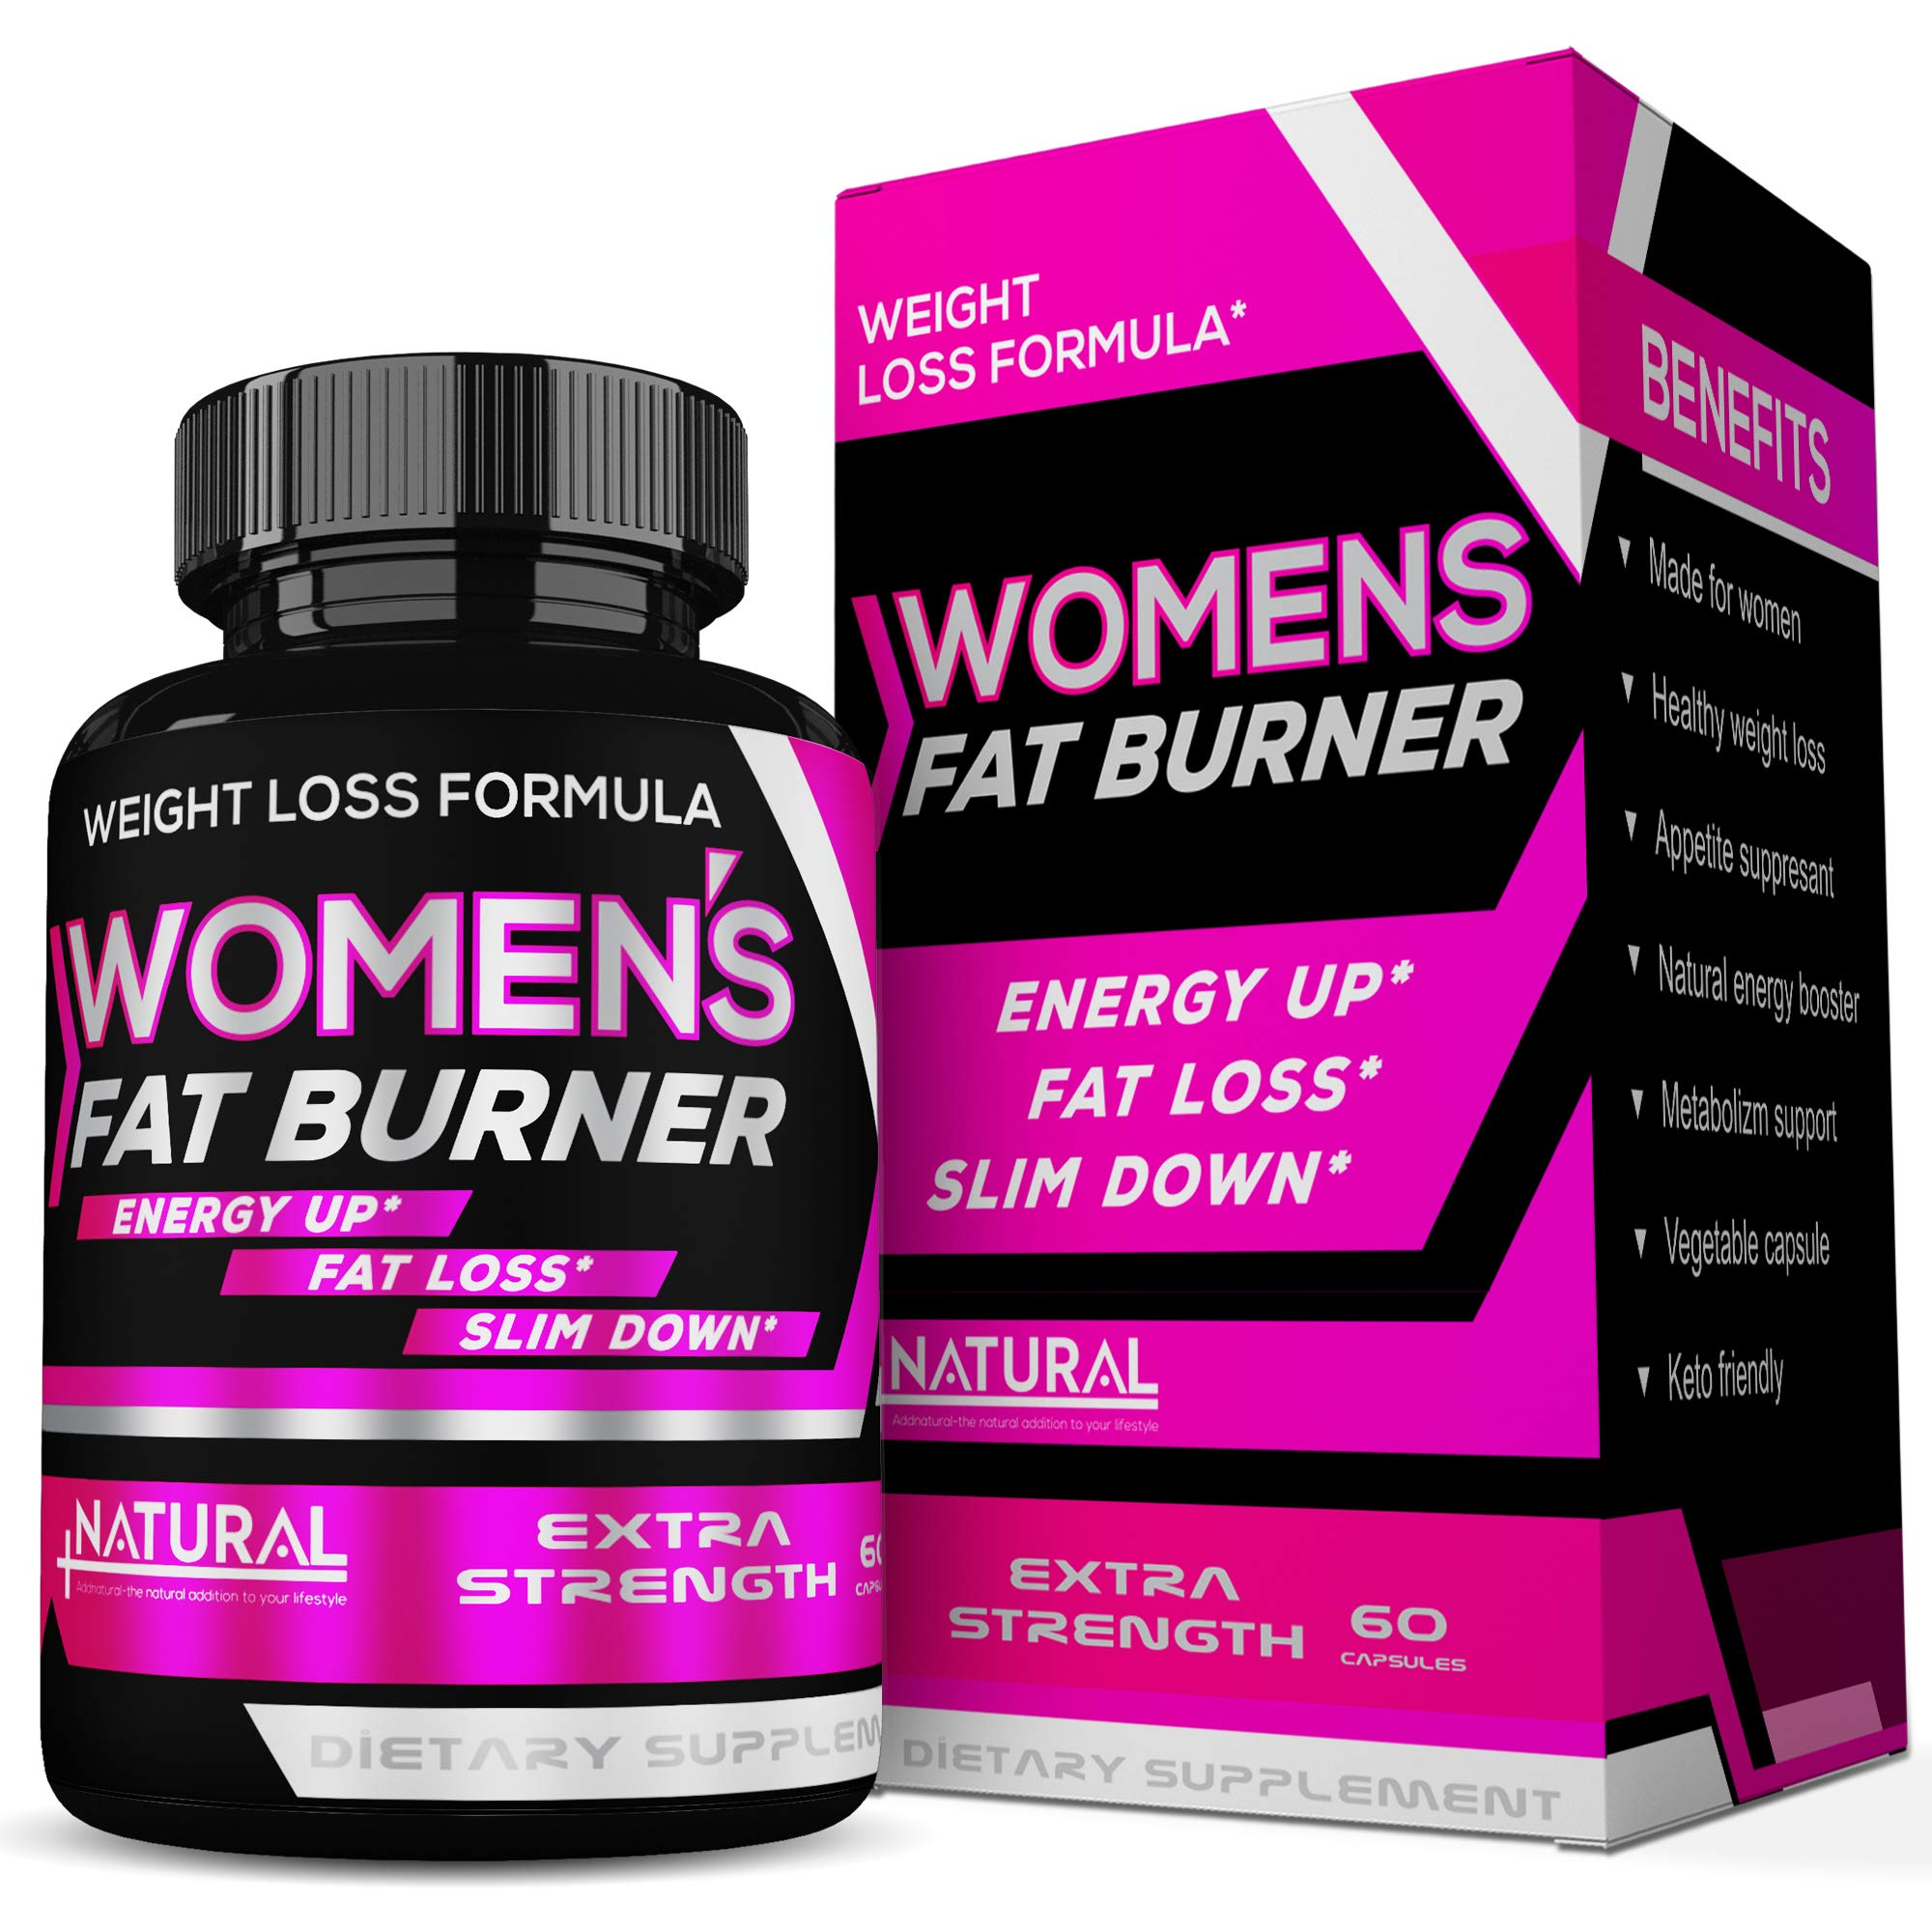 Fat Burner Thermogenic Weight Loss Diet Pills That Work Fast for Women 6 - Weight Loss Supplements - Keto Friendly- Carb Blocker Appetite Suppressant by Addnatural